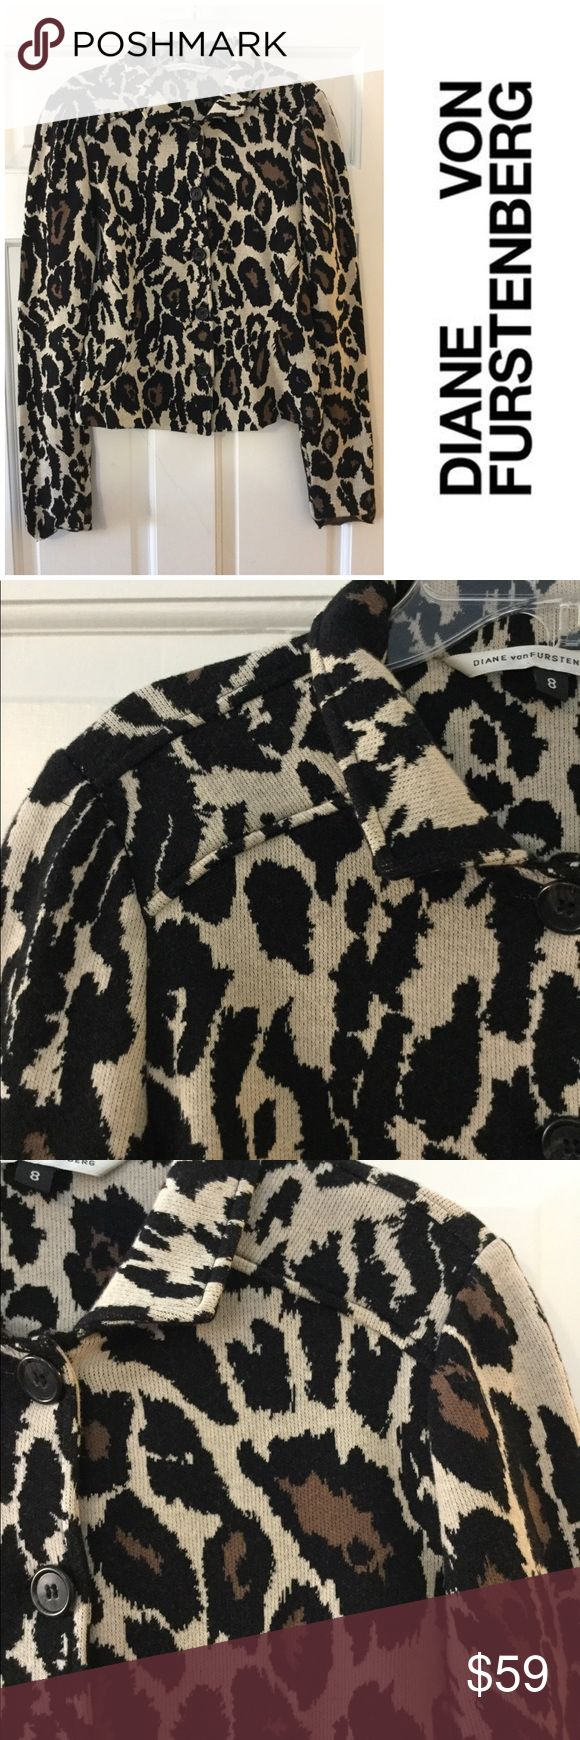 "DVF leopard print knit jacket Brown, black and creme Diane von Furstenberg knit jacket with leopard print throughout, standing collar and button closures at front.  Bust: 35""  Waist: 31""  Shoulder: 13""  Length: 20.5""  Sleeve: 31""  Excellent condition. EUC.  Smoke free and pet free. Diane Von Furstenberg Jackets & Coats"